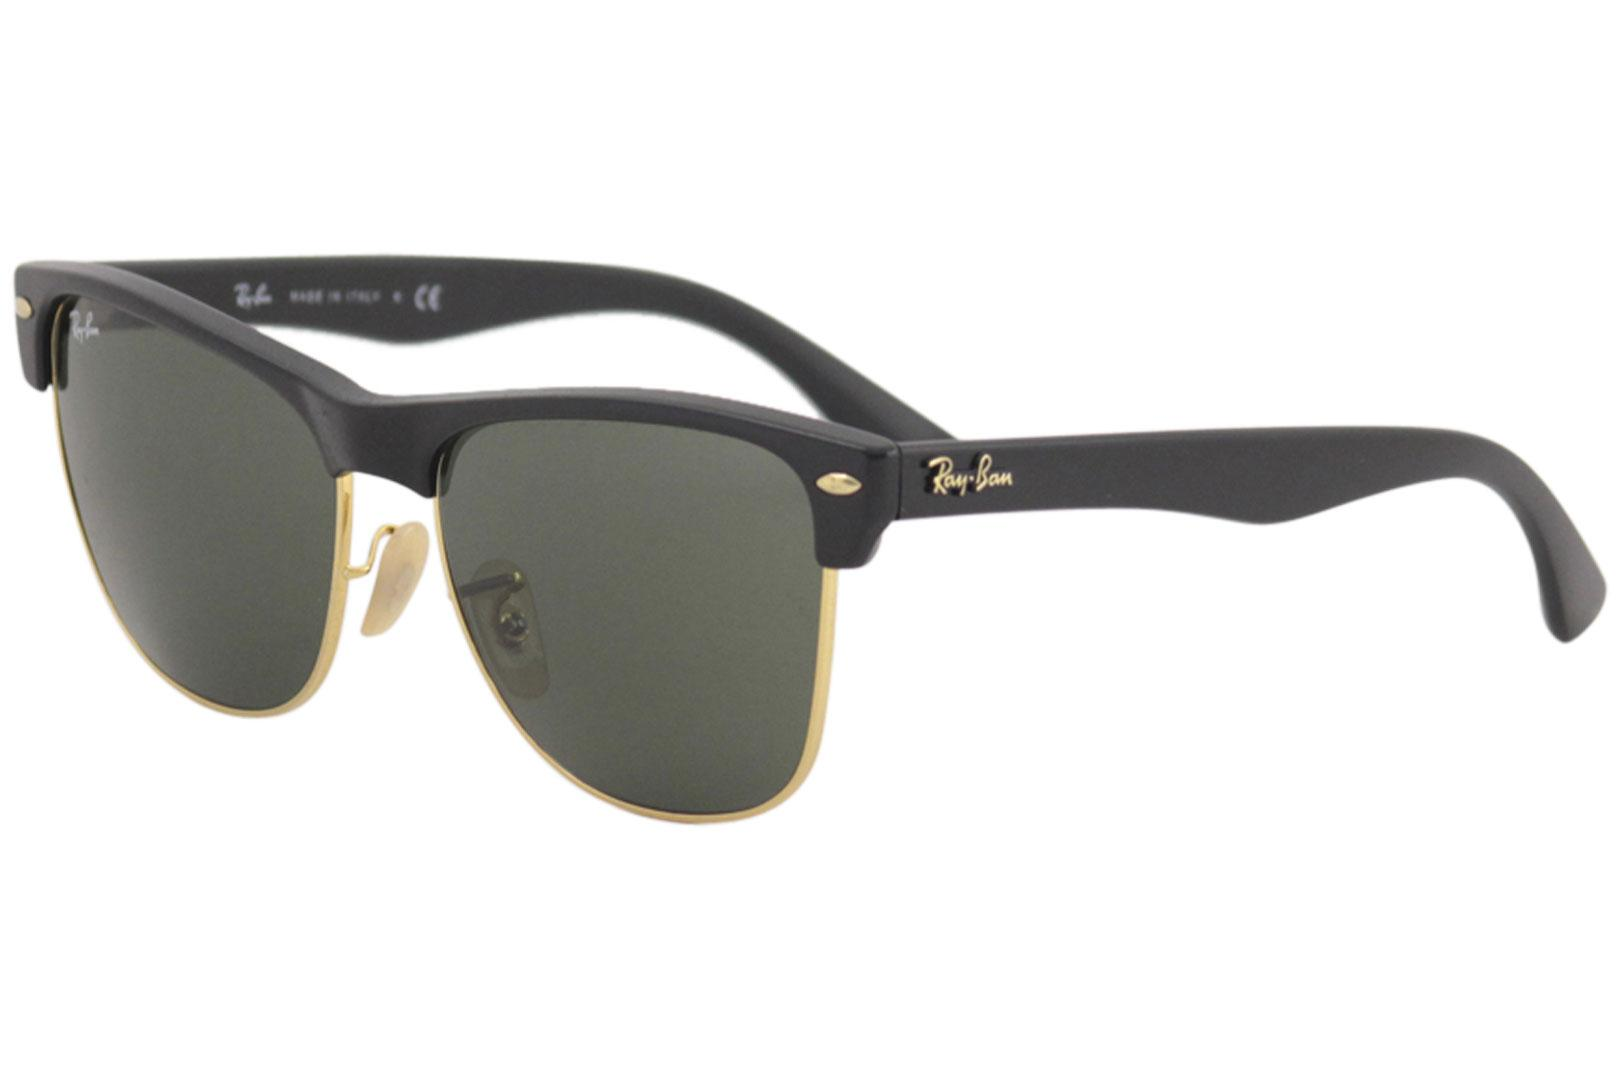 7b1acc9eea30a Ray Ban Clubmaster Oversized RB4175 RB 4175 RayBan Wayfarer Sunglasses 57mm  by Ray Ban. 123456